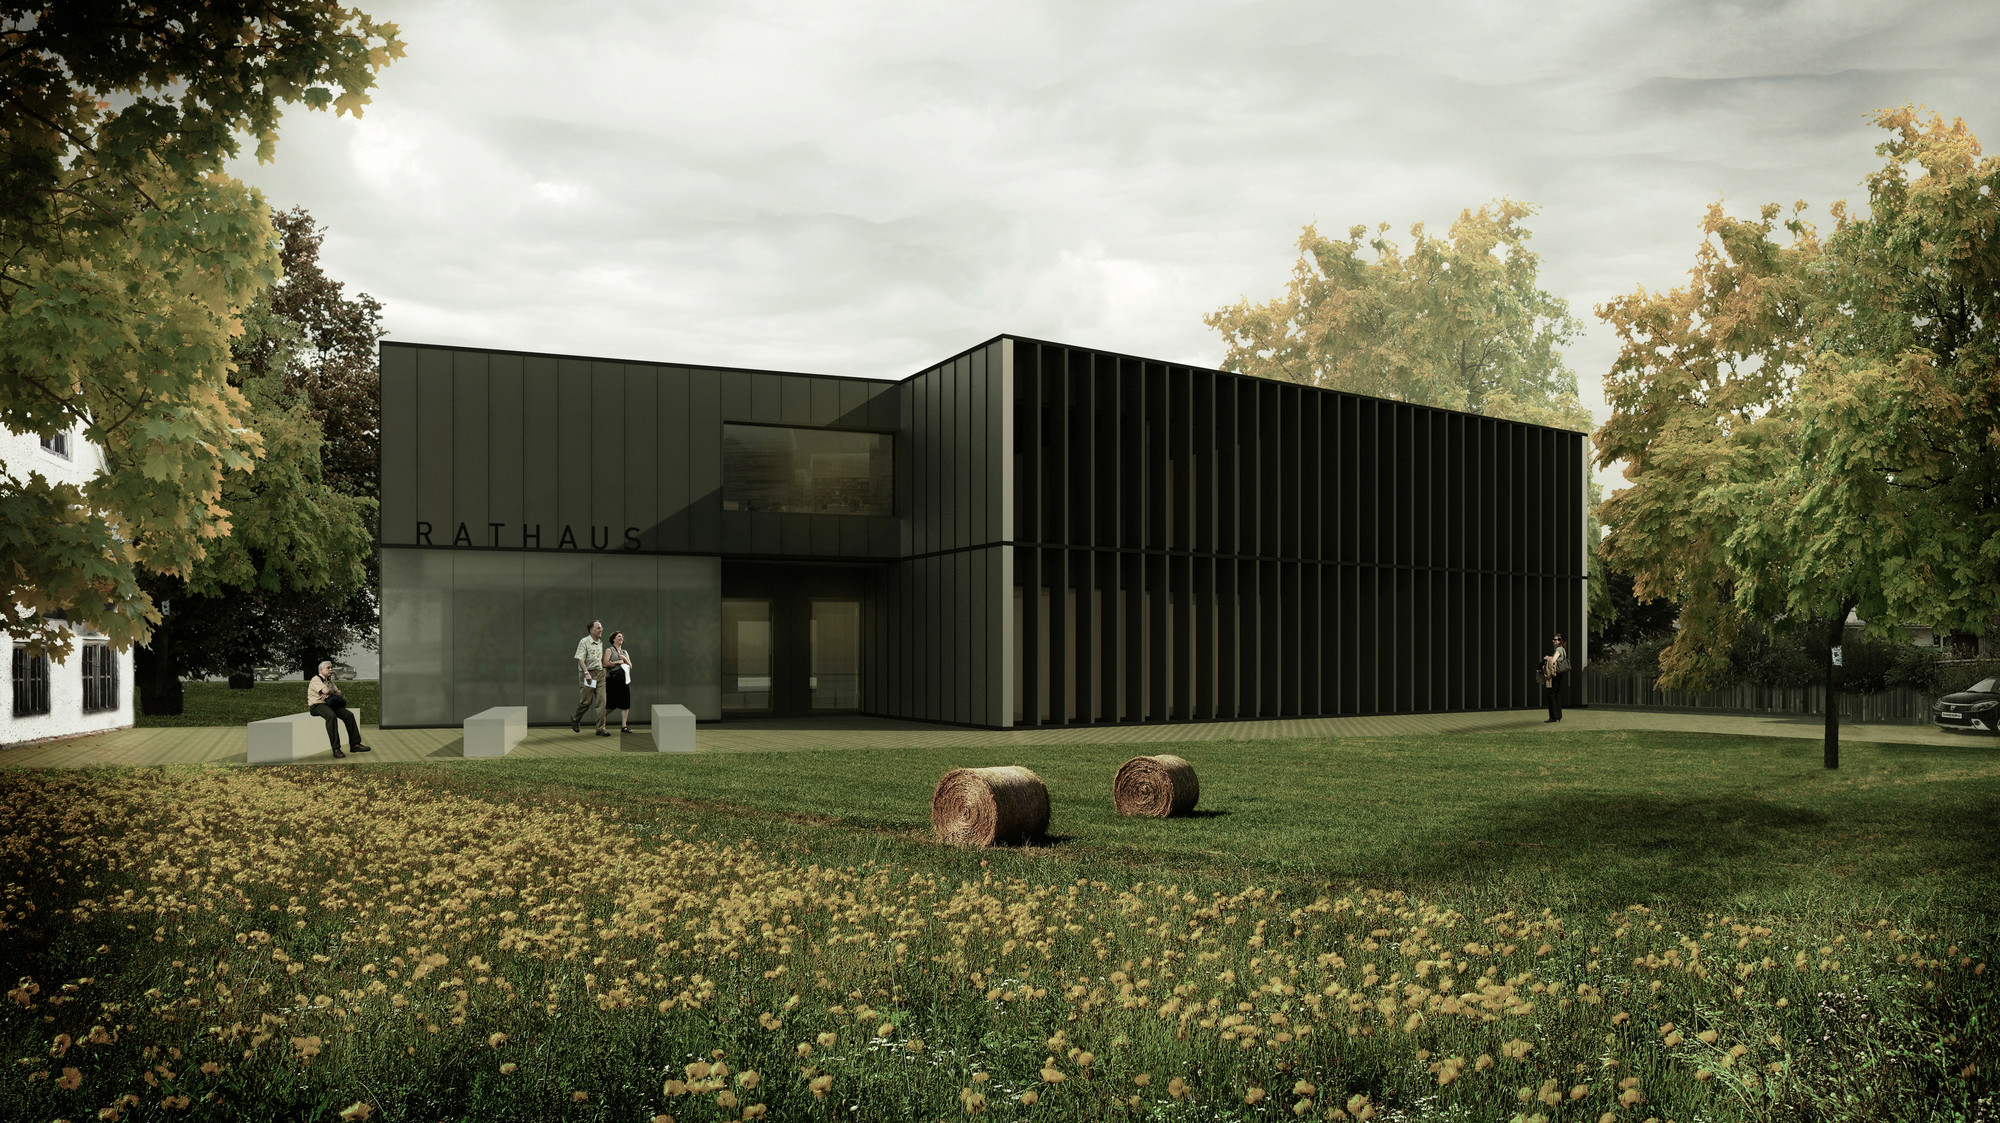 Primer Lugar en nuevo ayuntamiento en Denklingen / Alemania, Courtesy of STUDIO SWES architects